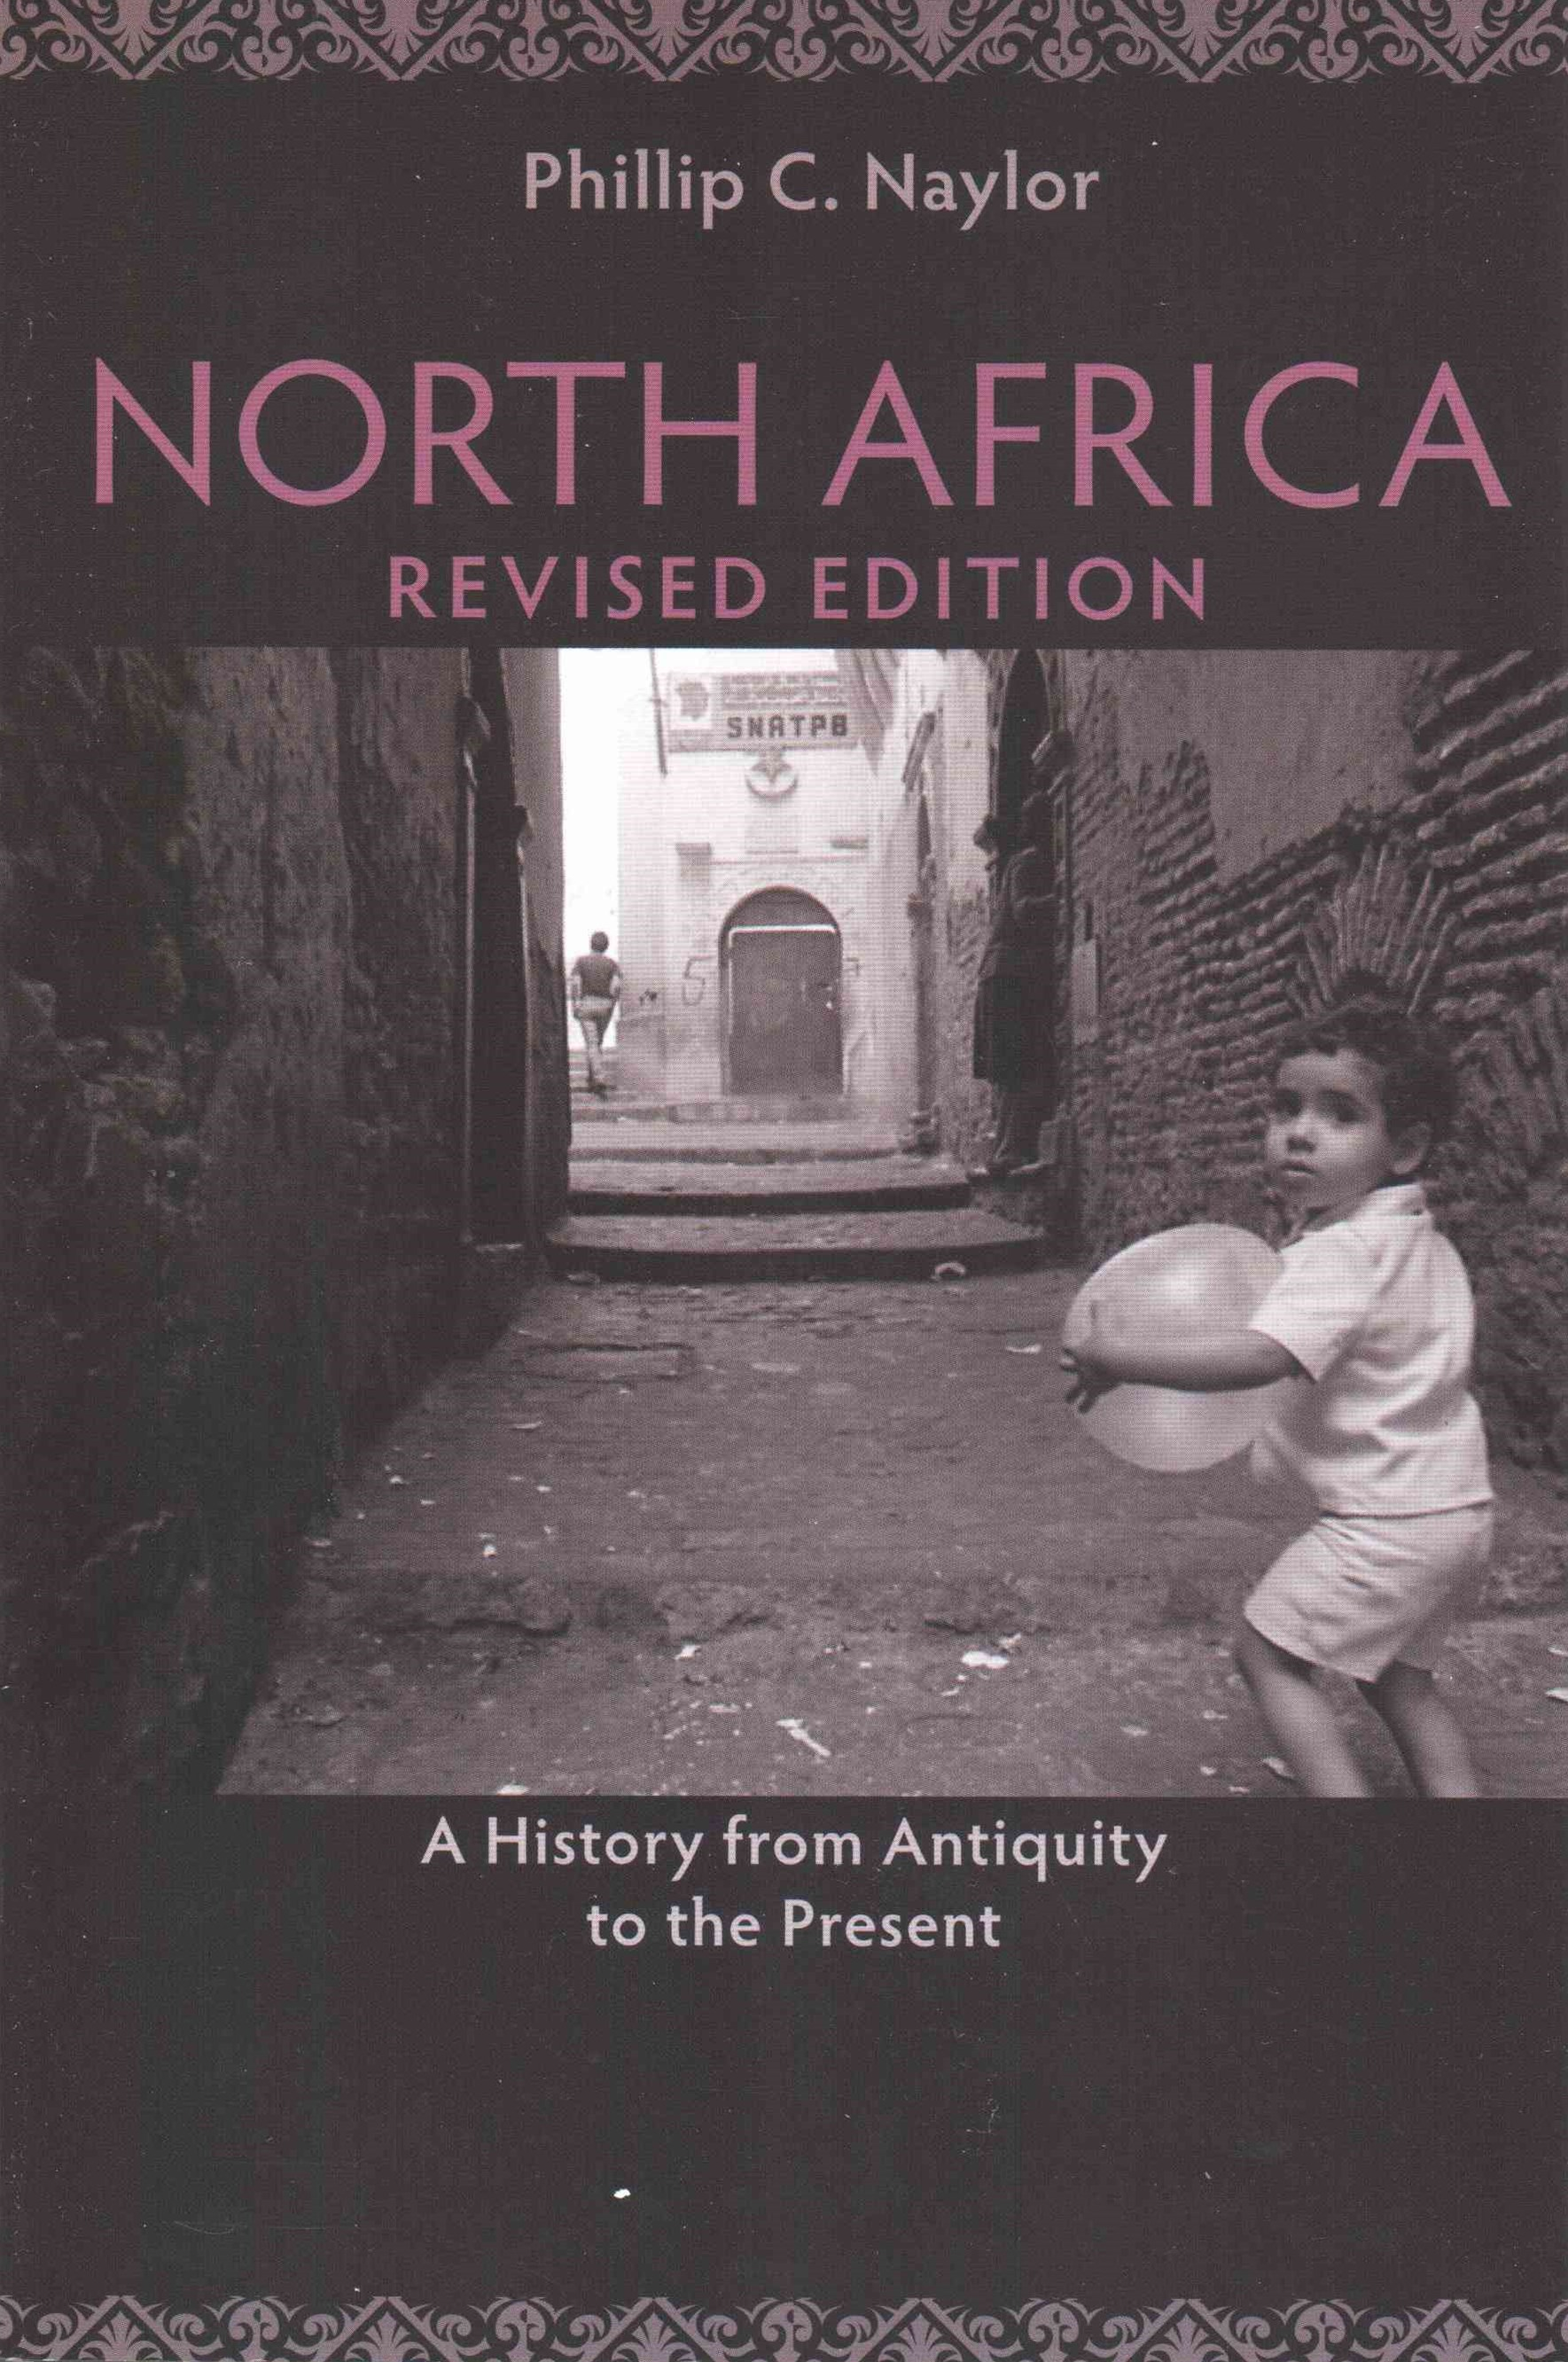 North Africa, Revised Edition